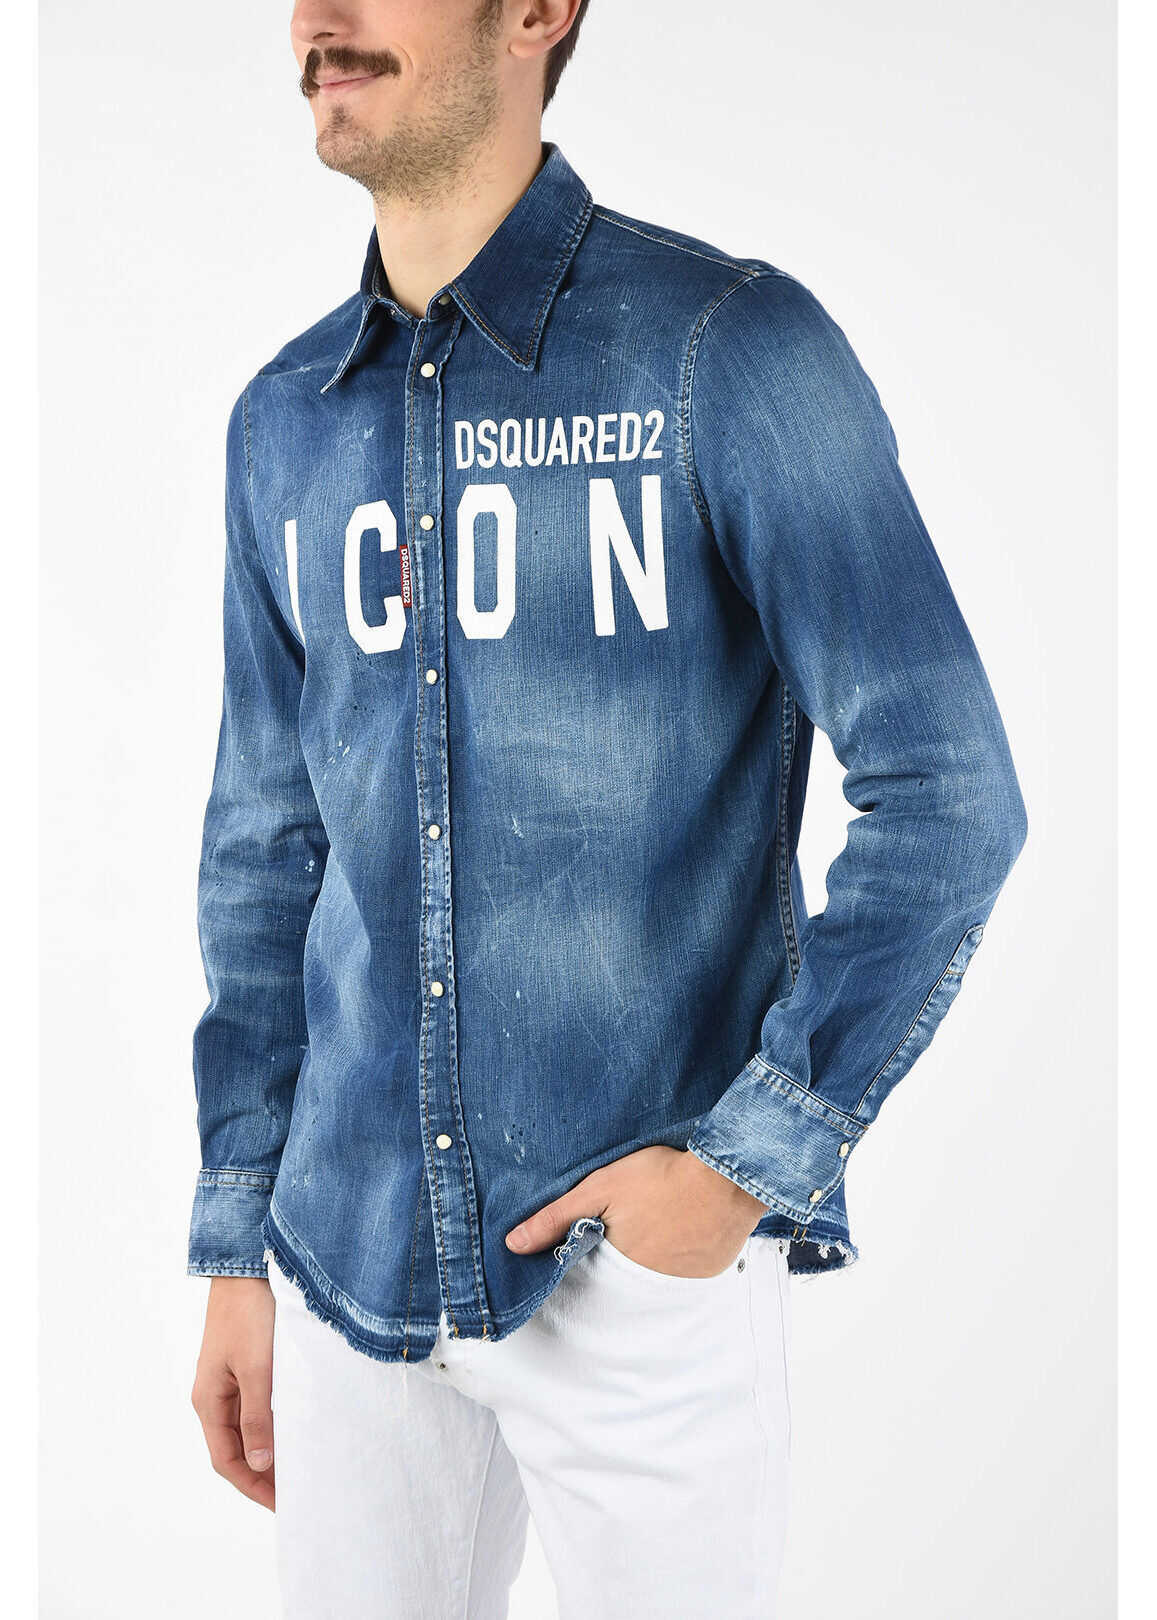 DSQUARED2 ICON Snap Button Stone Washed Denim Shirt BLUE imagine